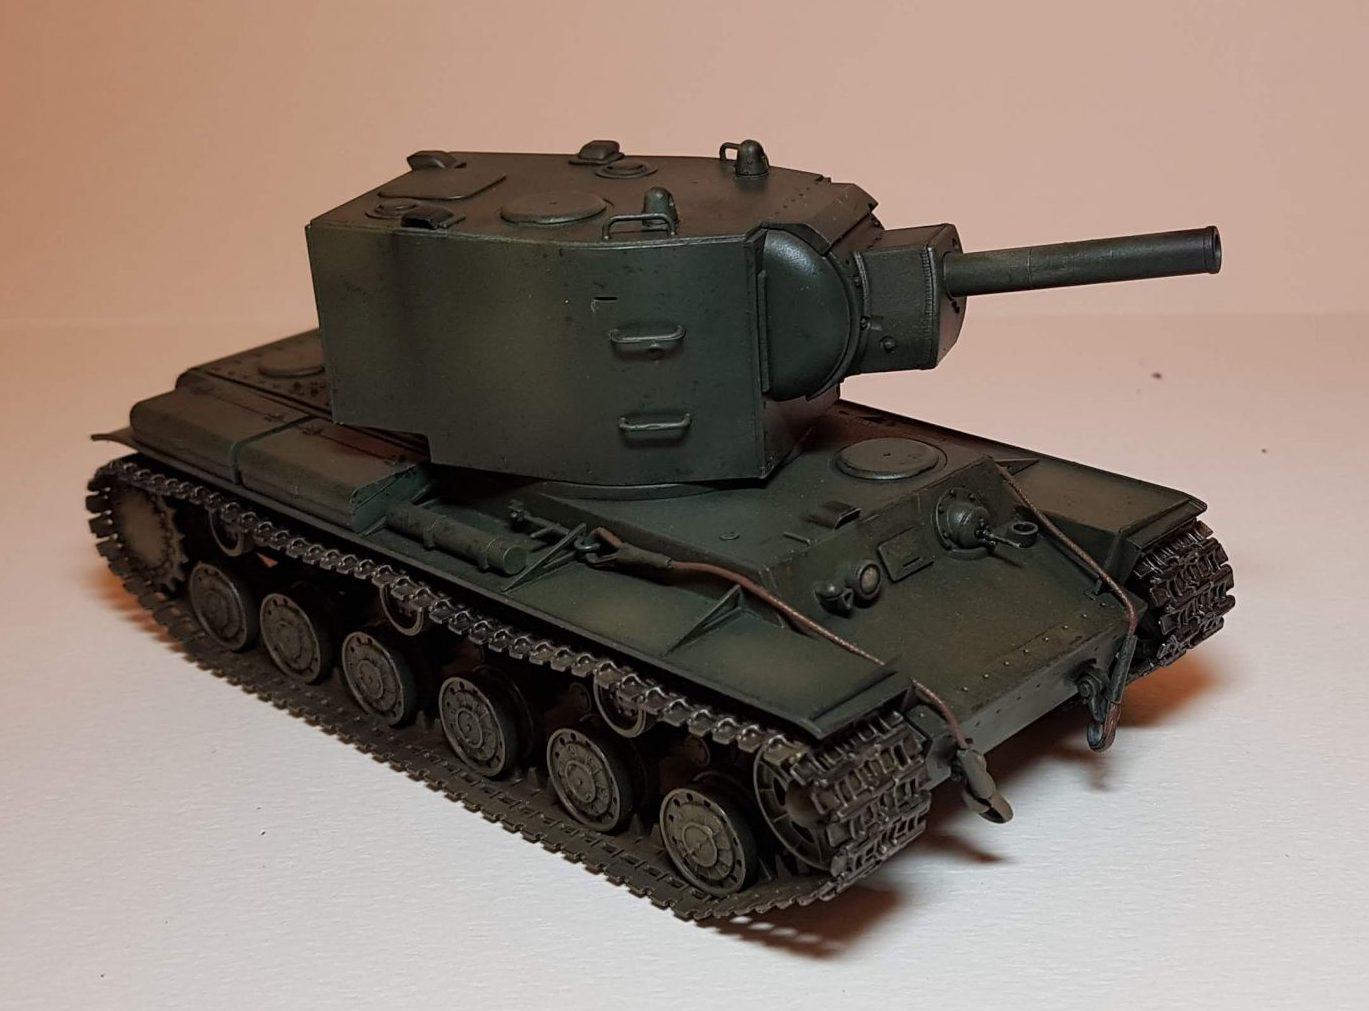 KV-2 (WW2) - View 1 - 1/35 Scale - Built By Wright Built - Tamiya Models